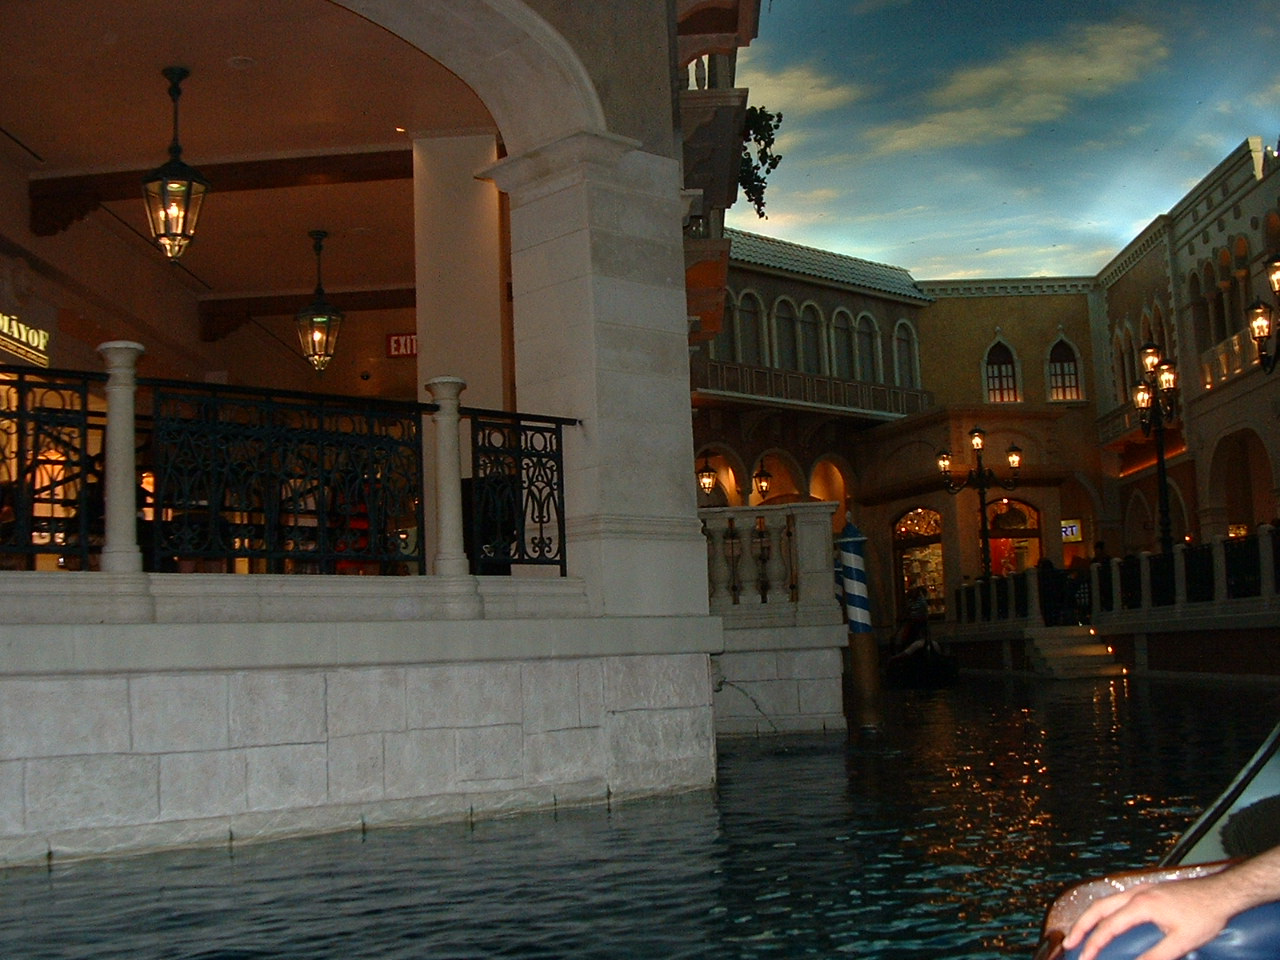 The canals at the Venetian